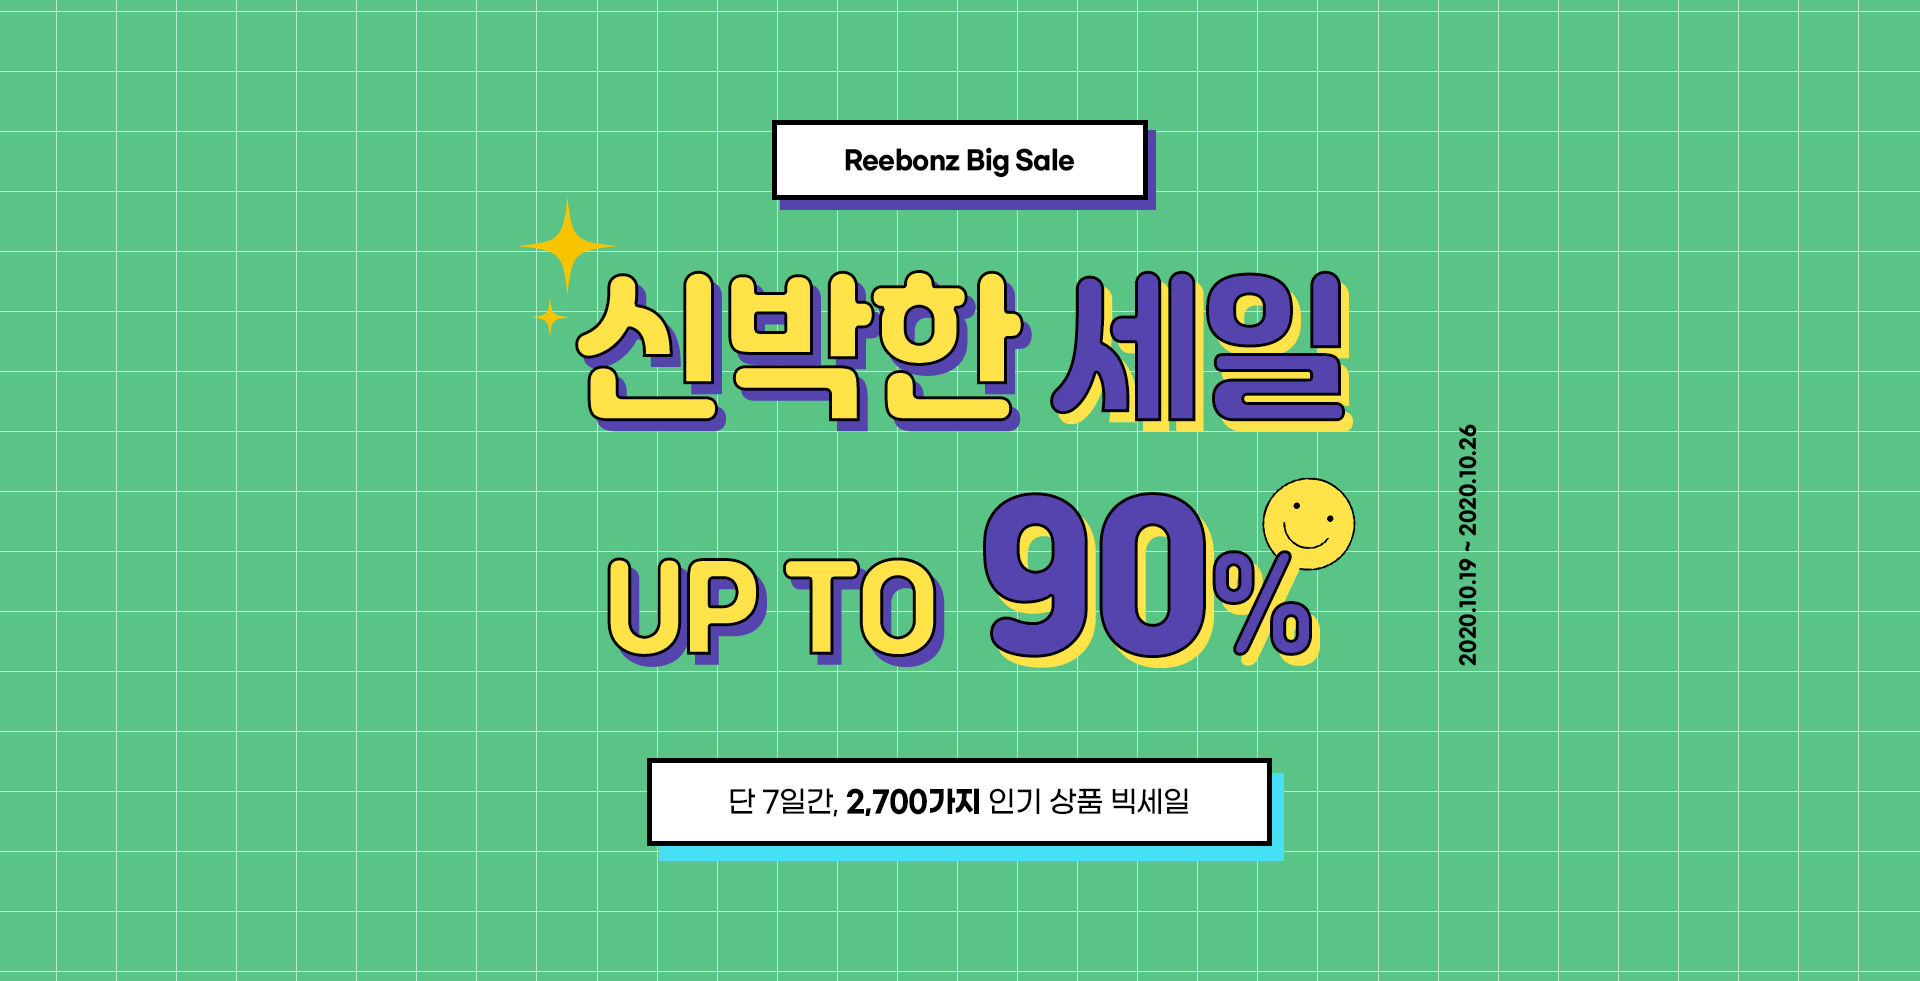 Reebonz Big Sale